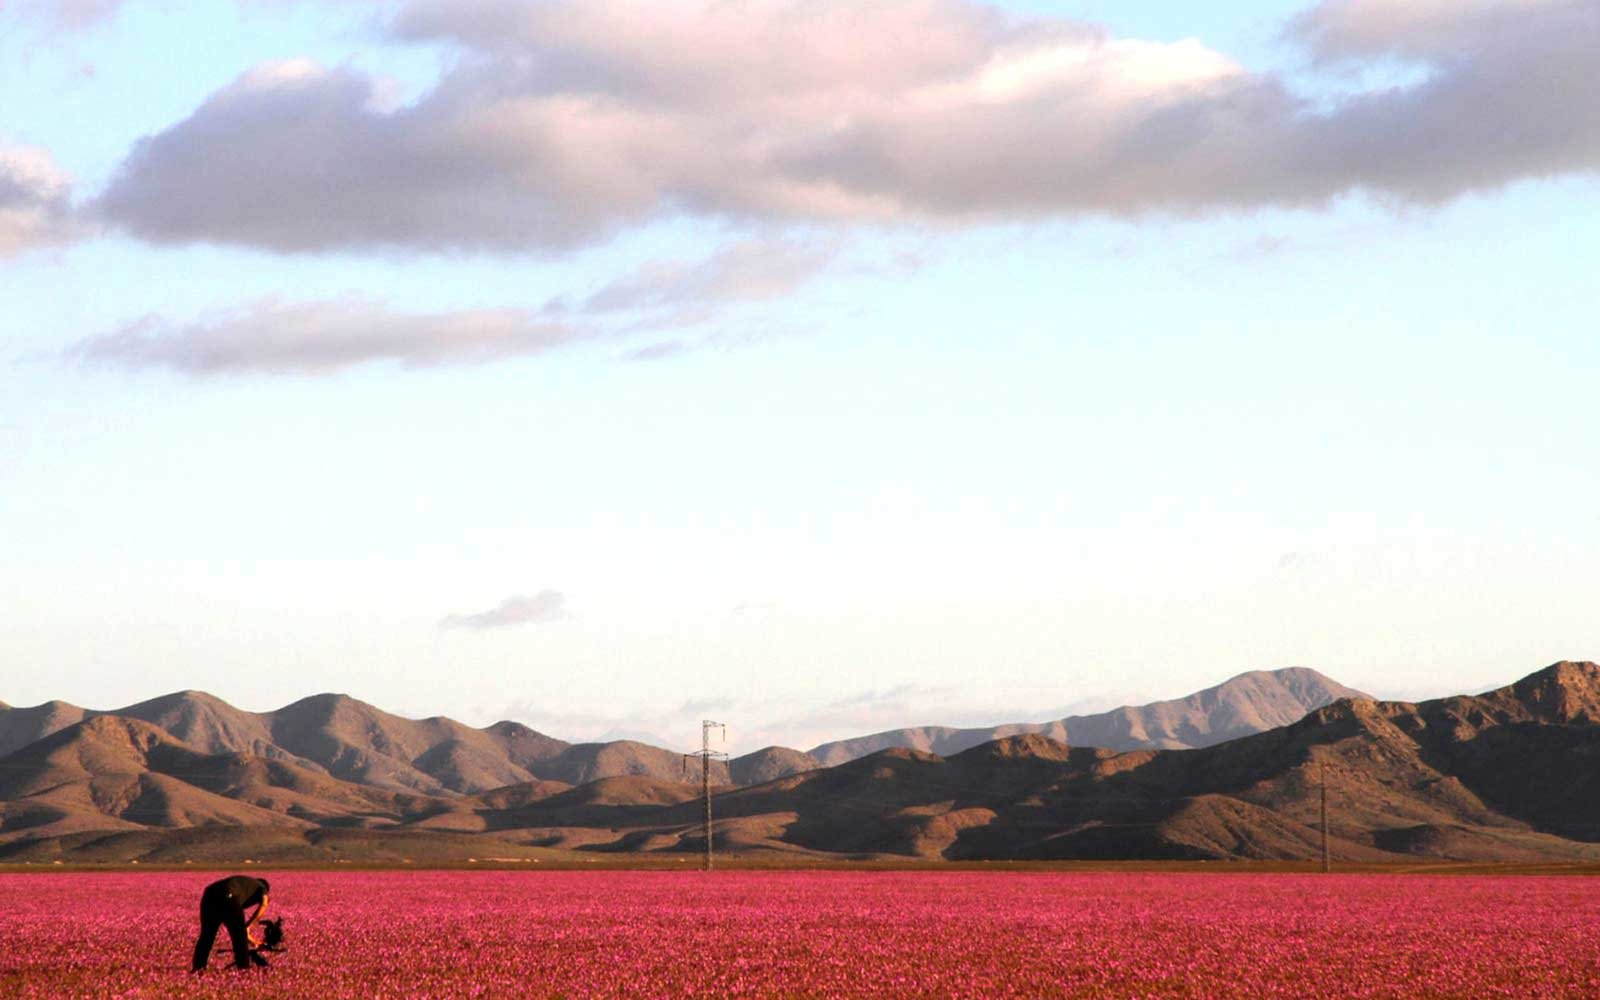 Man Looking at Desert Flowers in Chile